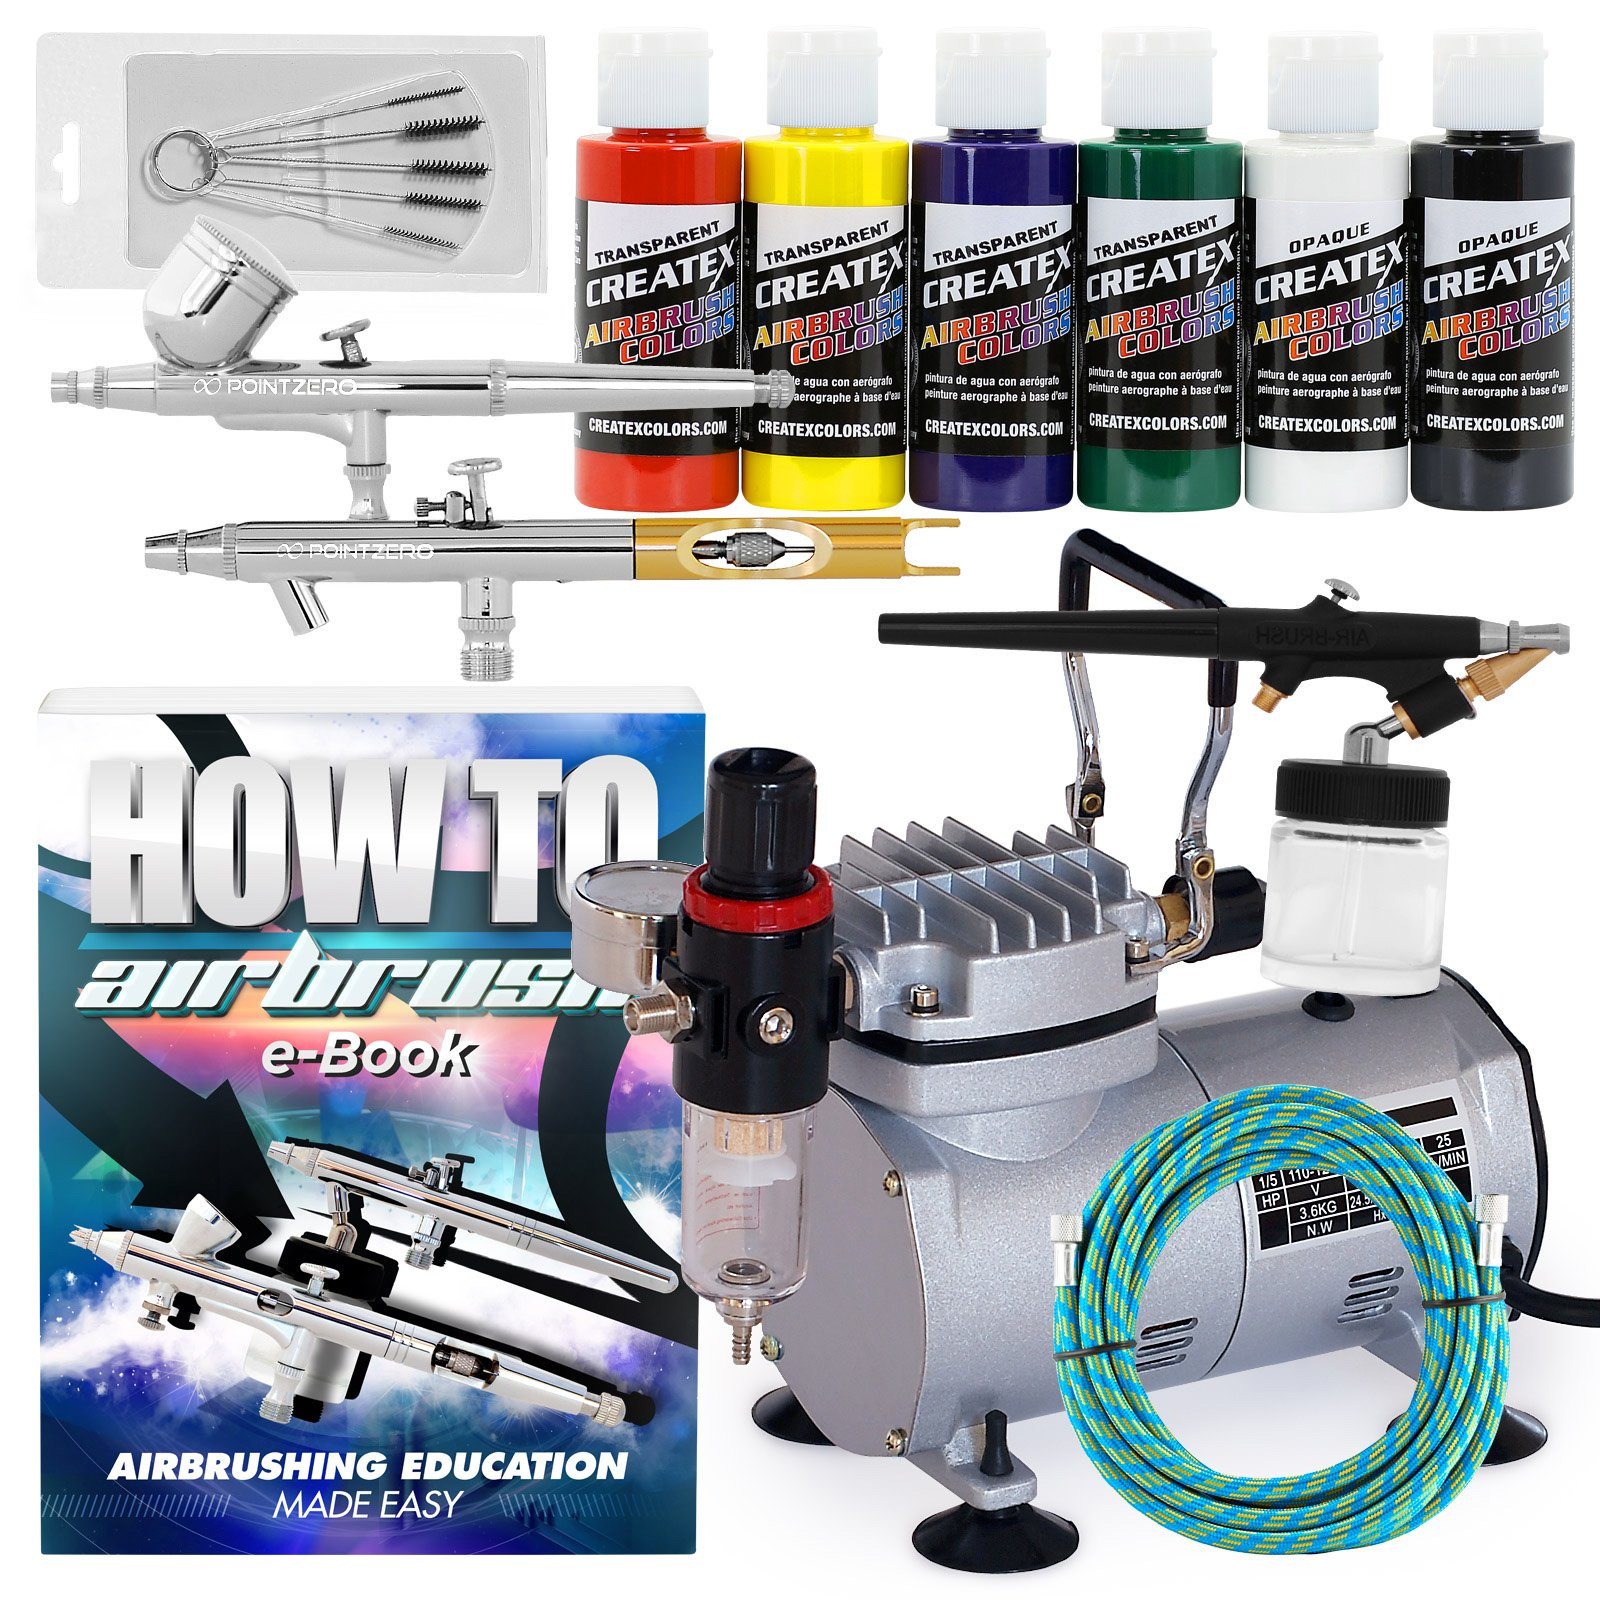 PointZero Multi-Purpose 3 Airbrush Kit w/Compressor and Createx Colors Set of 6 Paints by PointZero Airbrush